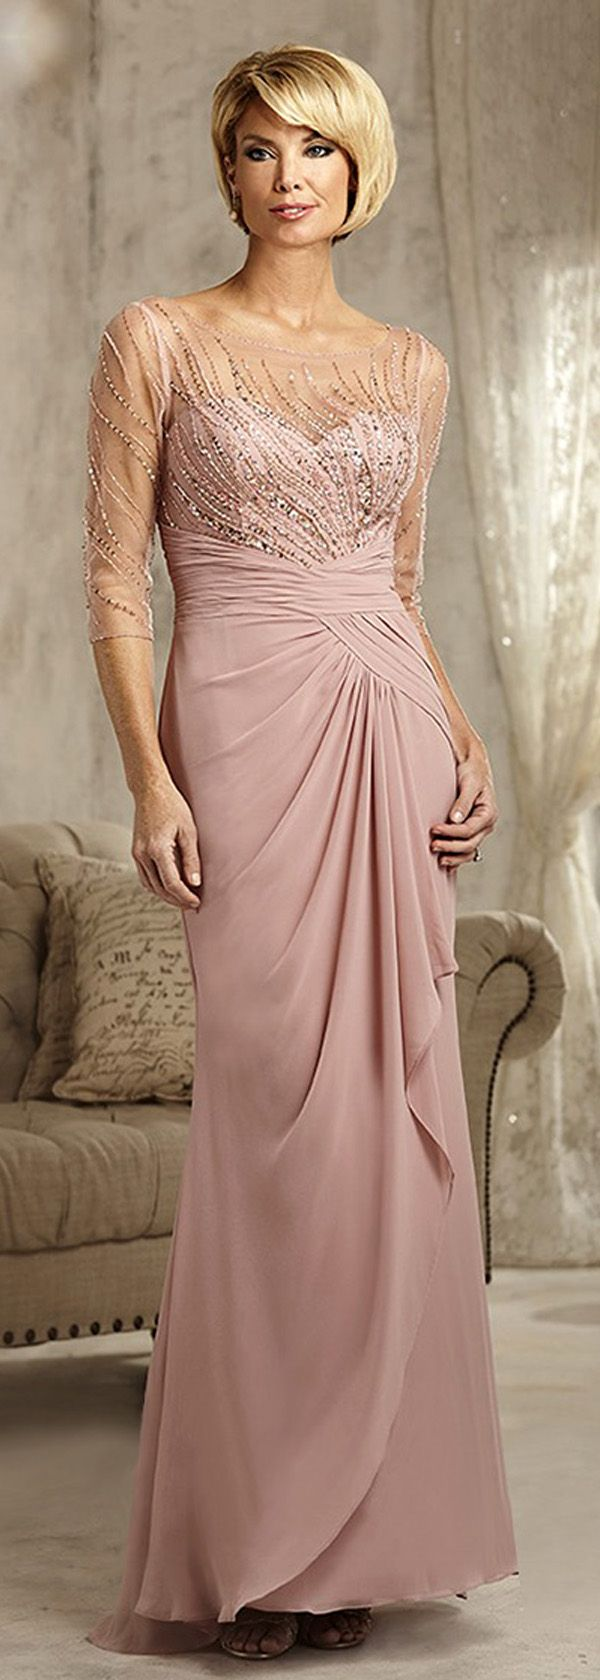 mother of the bride dresses mothers dress for wedding Exquisite Tulle Chiffon Scoop Neckline Sheath Mother Of The Bride Dresses With Beadings